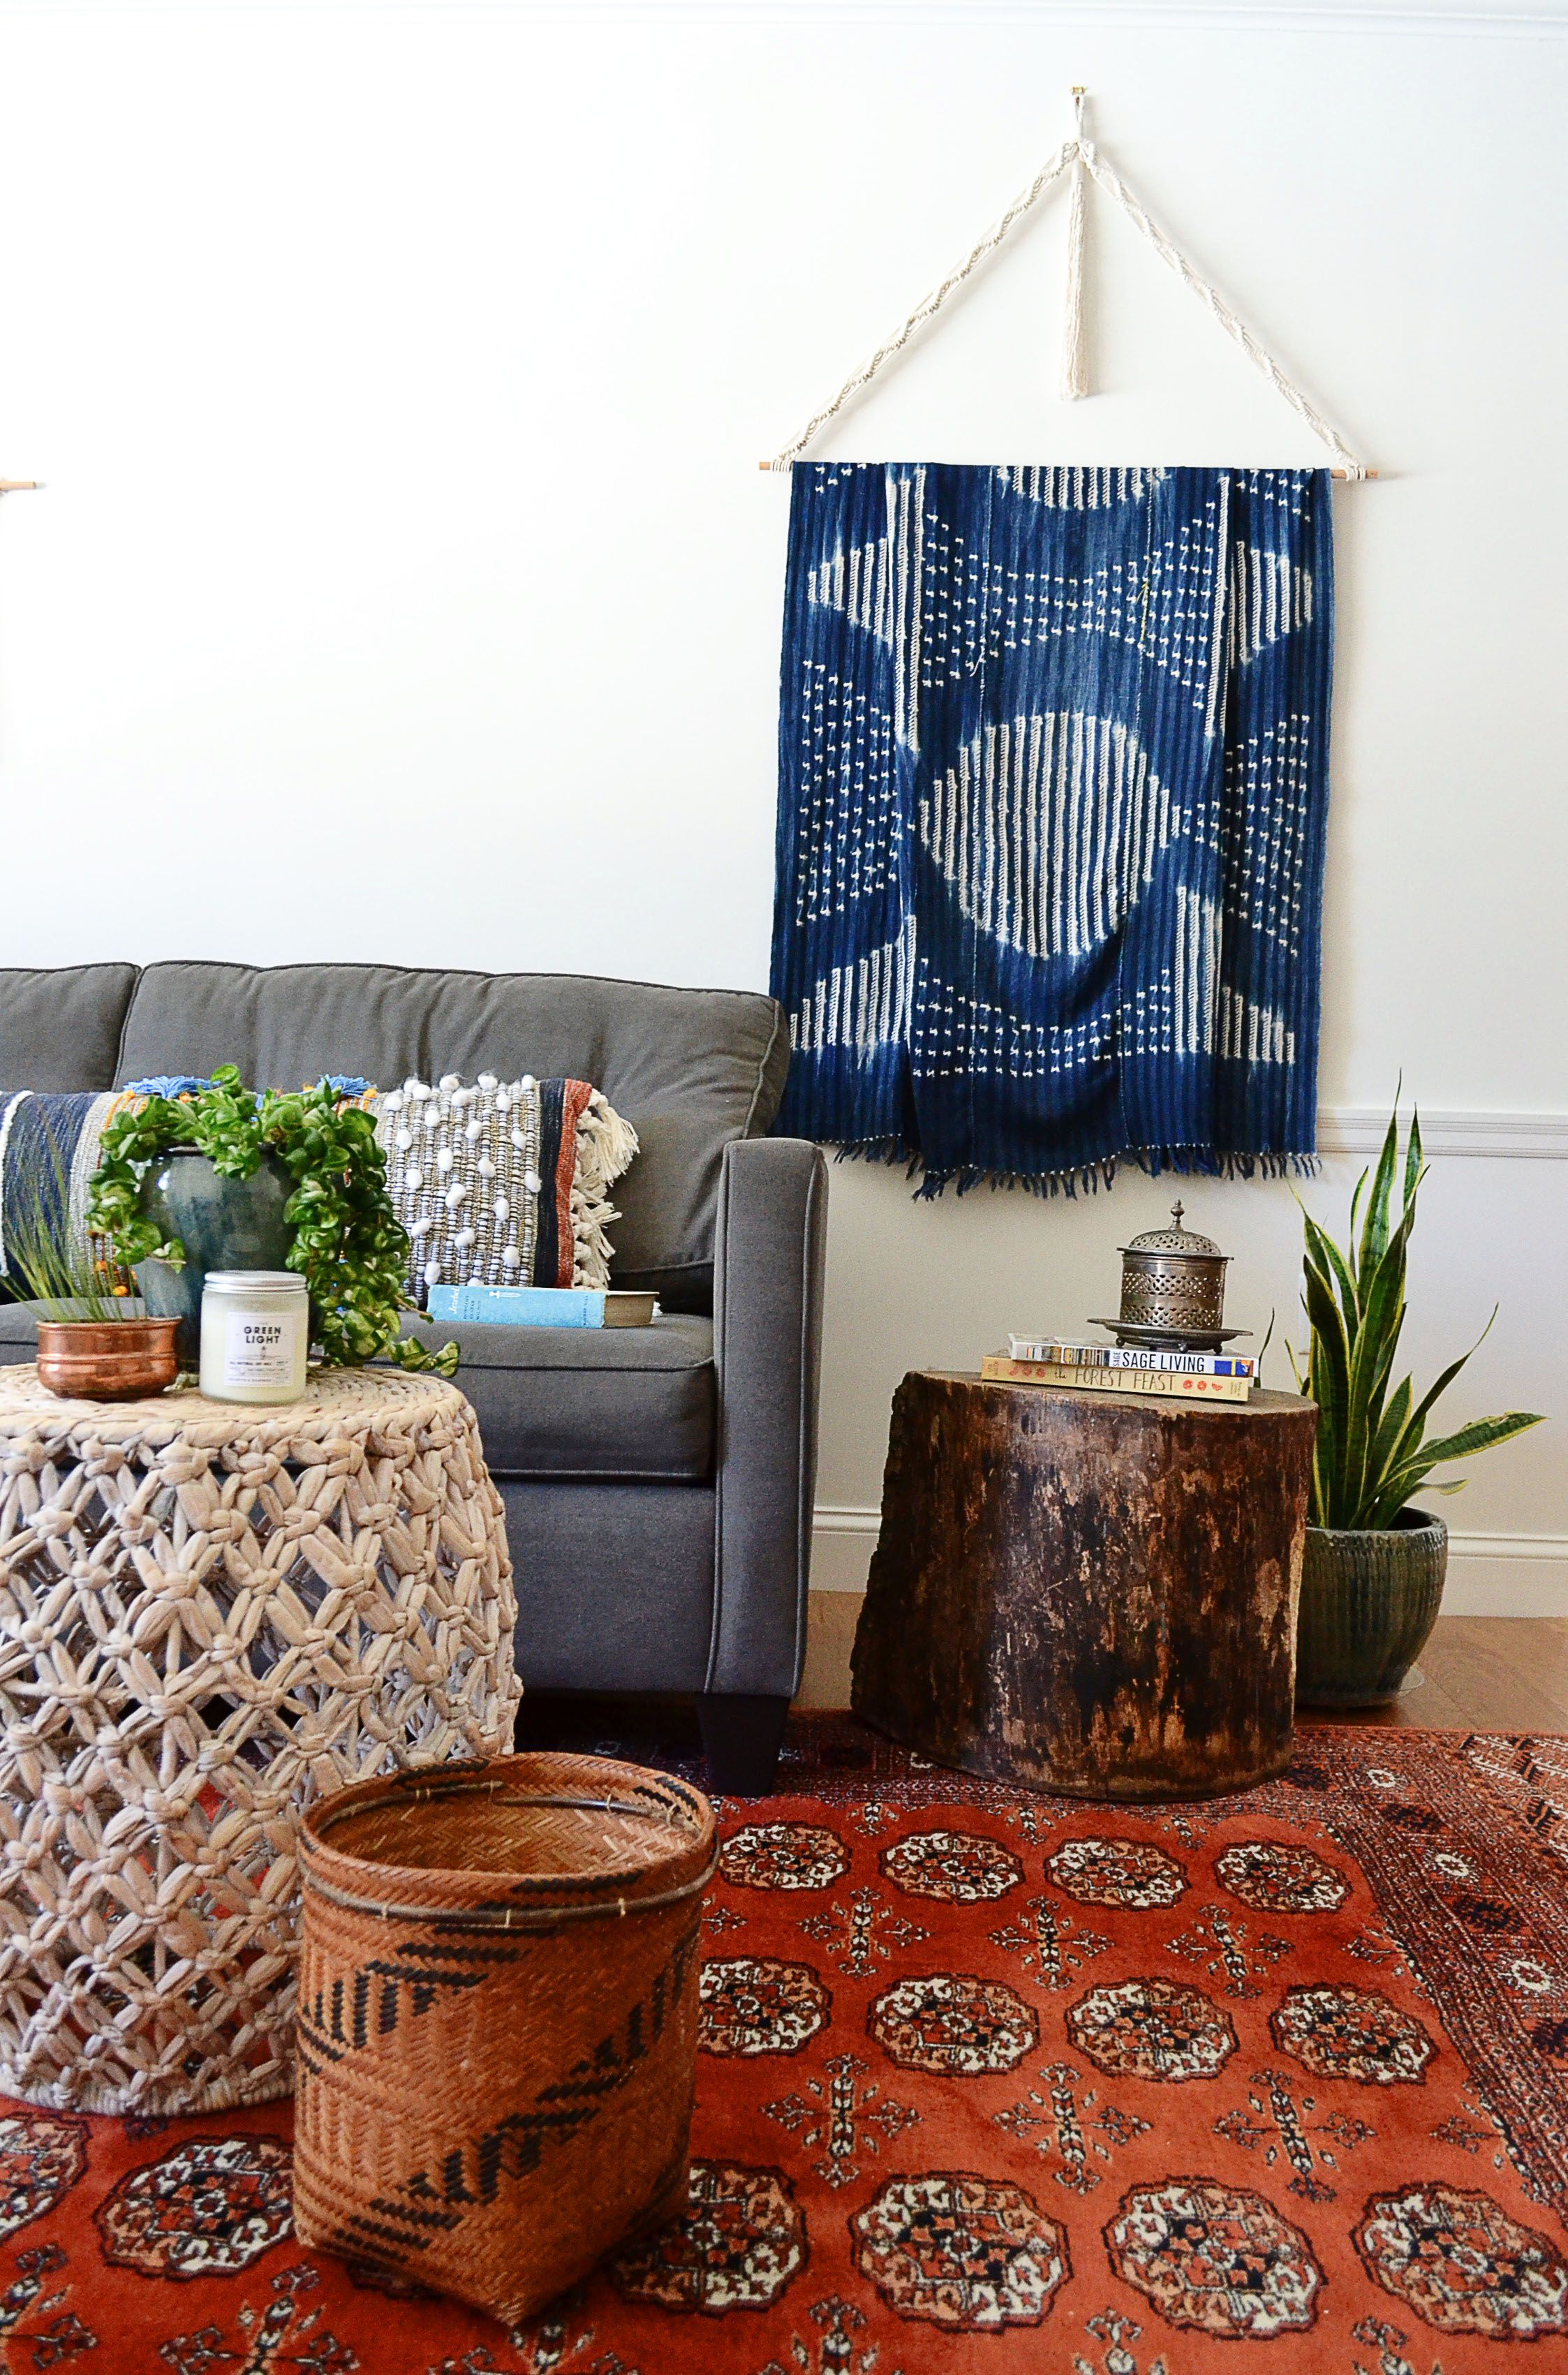 Eclectic home decor with handmade textile hanger by sara banner in